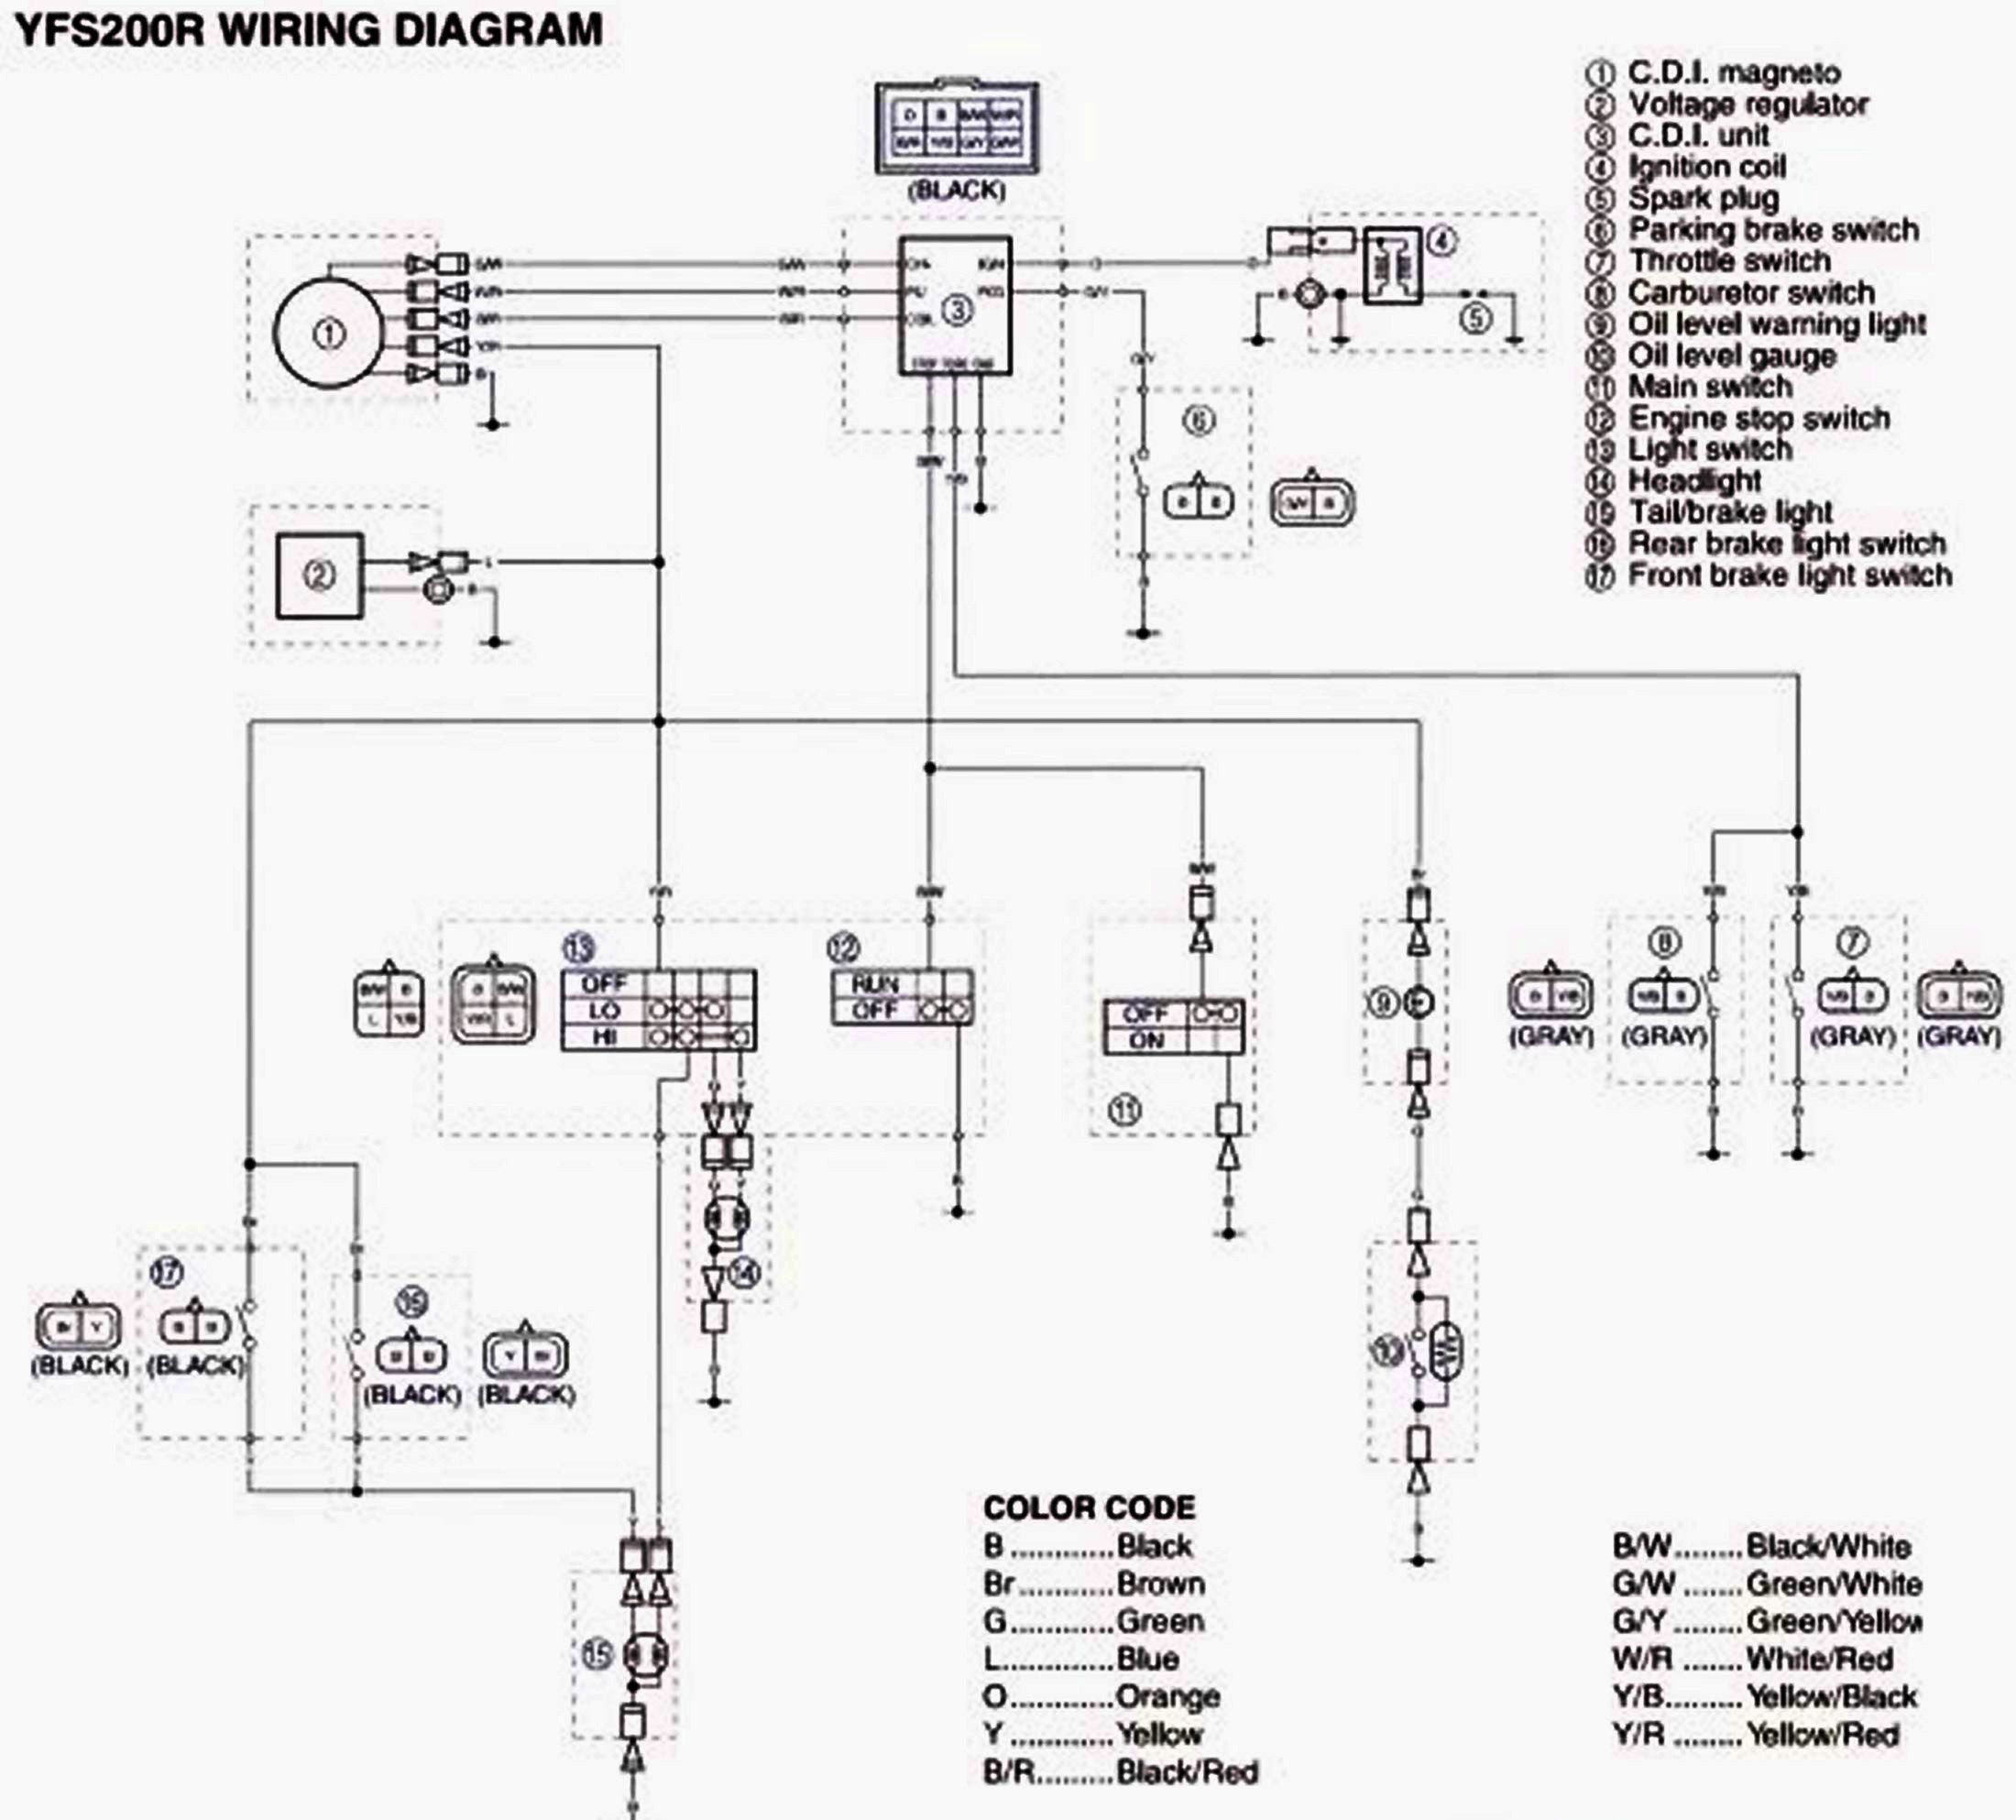 2003 Yamaha Blaster Wiring Diagram Schema Img 2002 Kawasaki 650 Atv Stock Diagrams Blasterforum Com